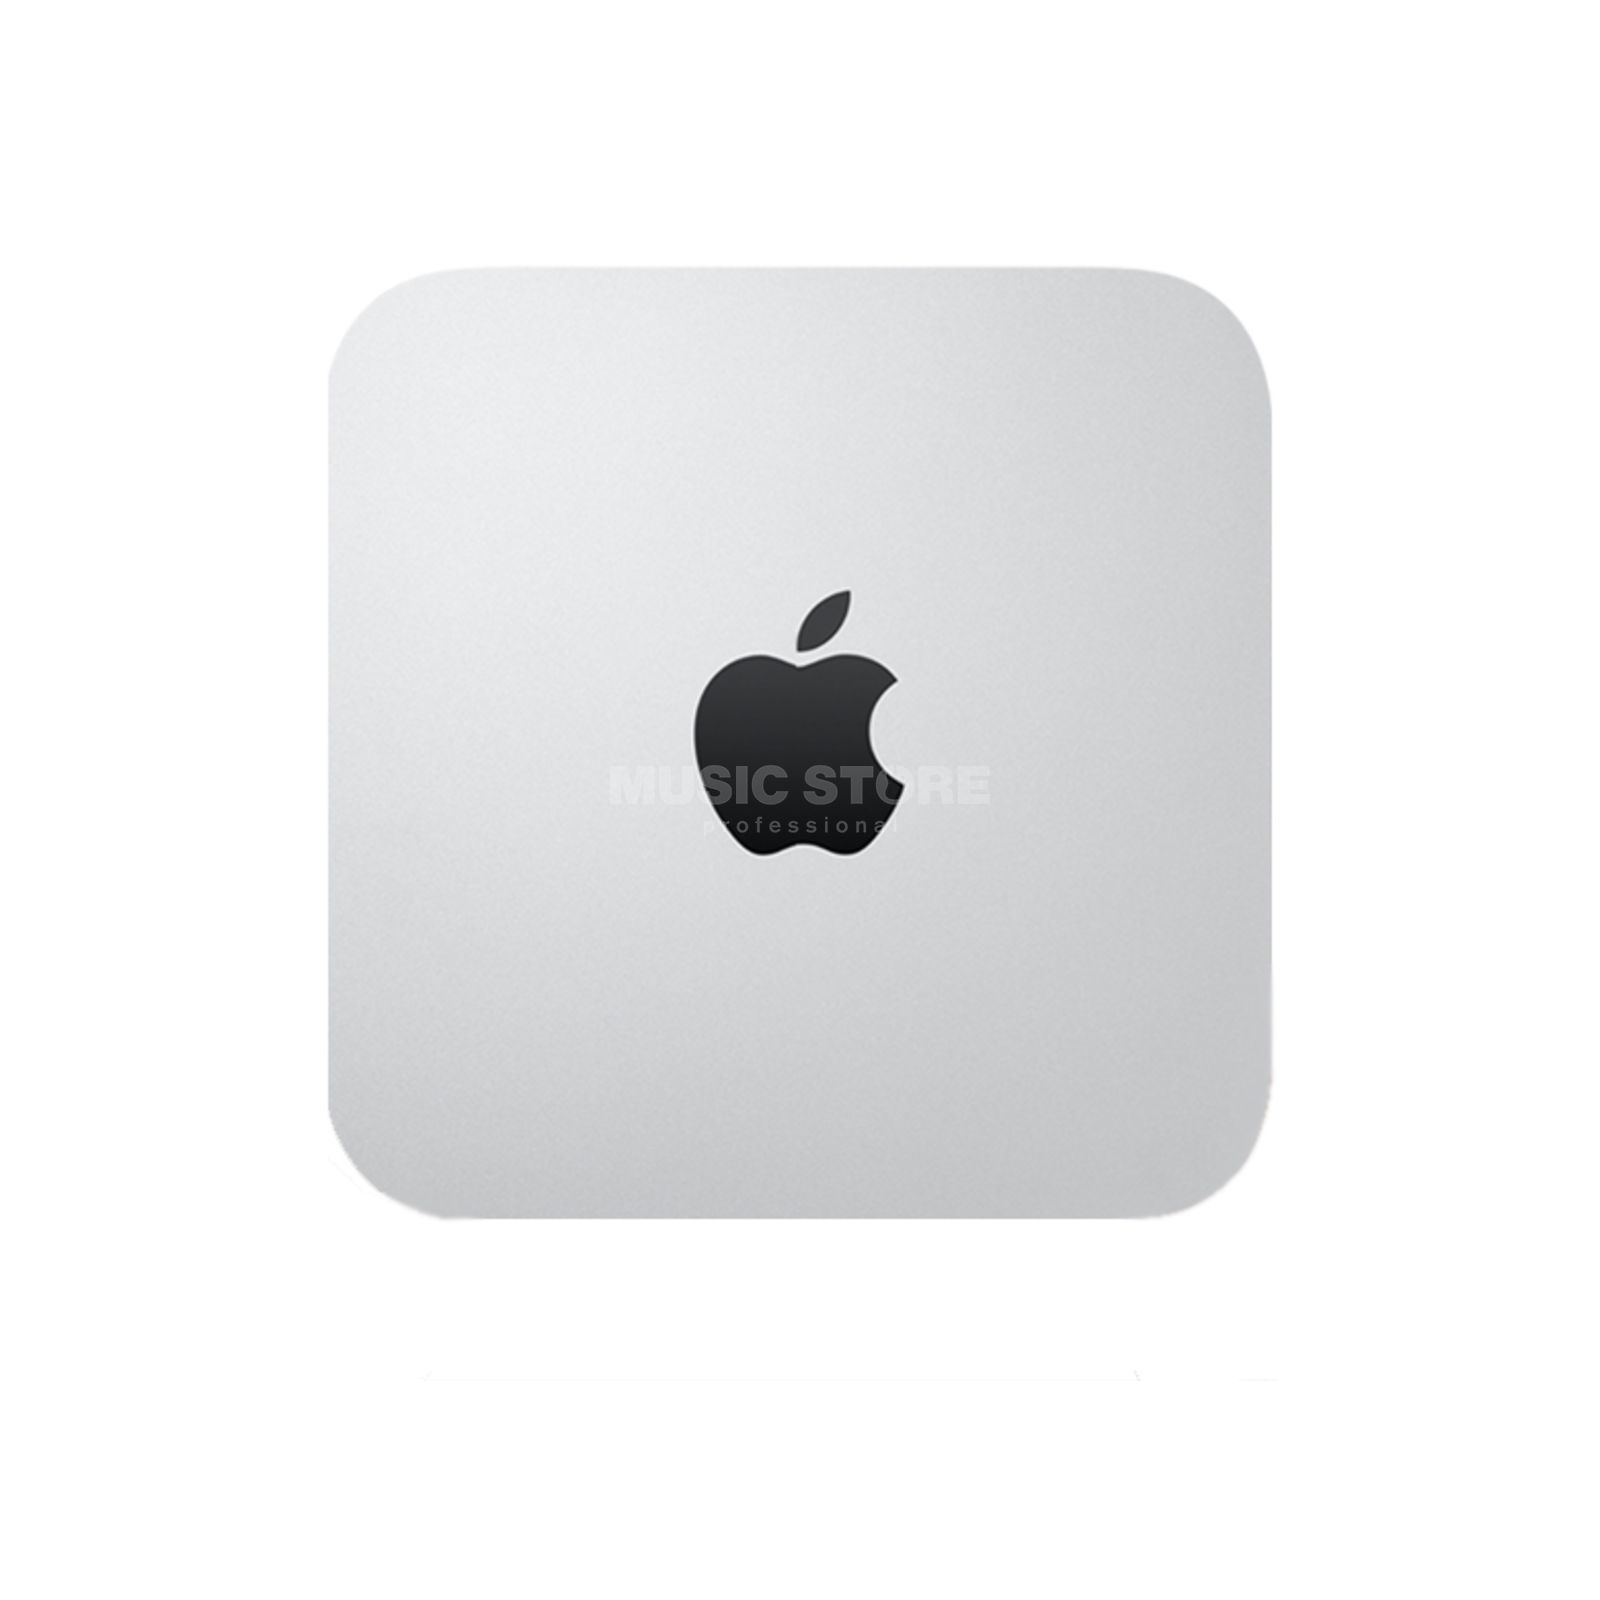 Apple Mac mini 1.4GHz Dual-Core i5 4GB RAM, 500GB, Graphics 5000 Produktbillede